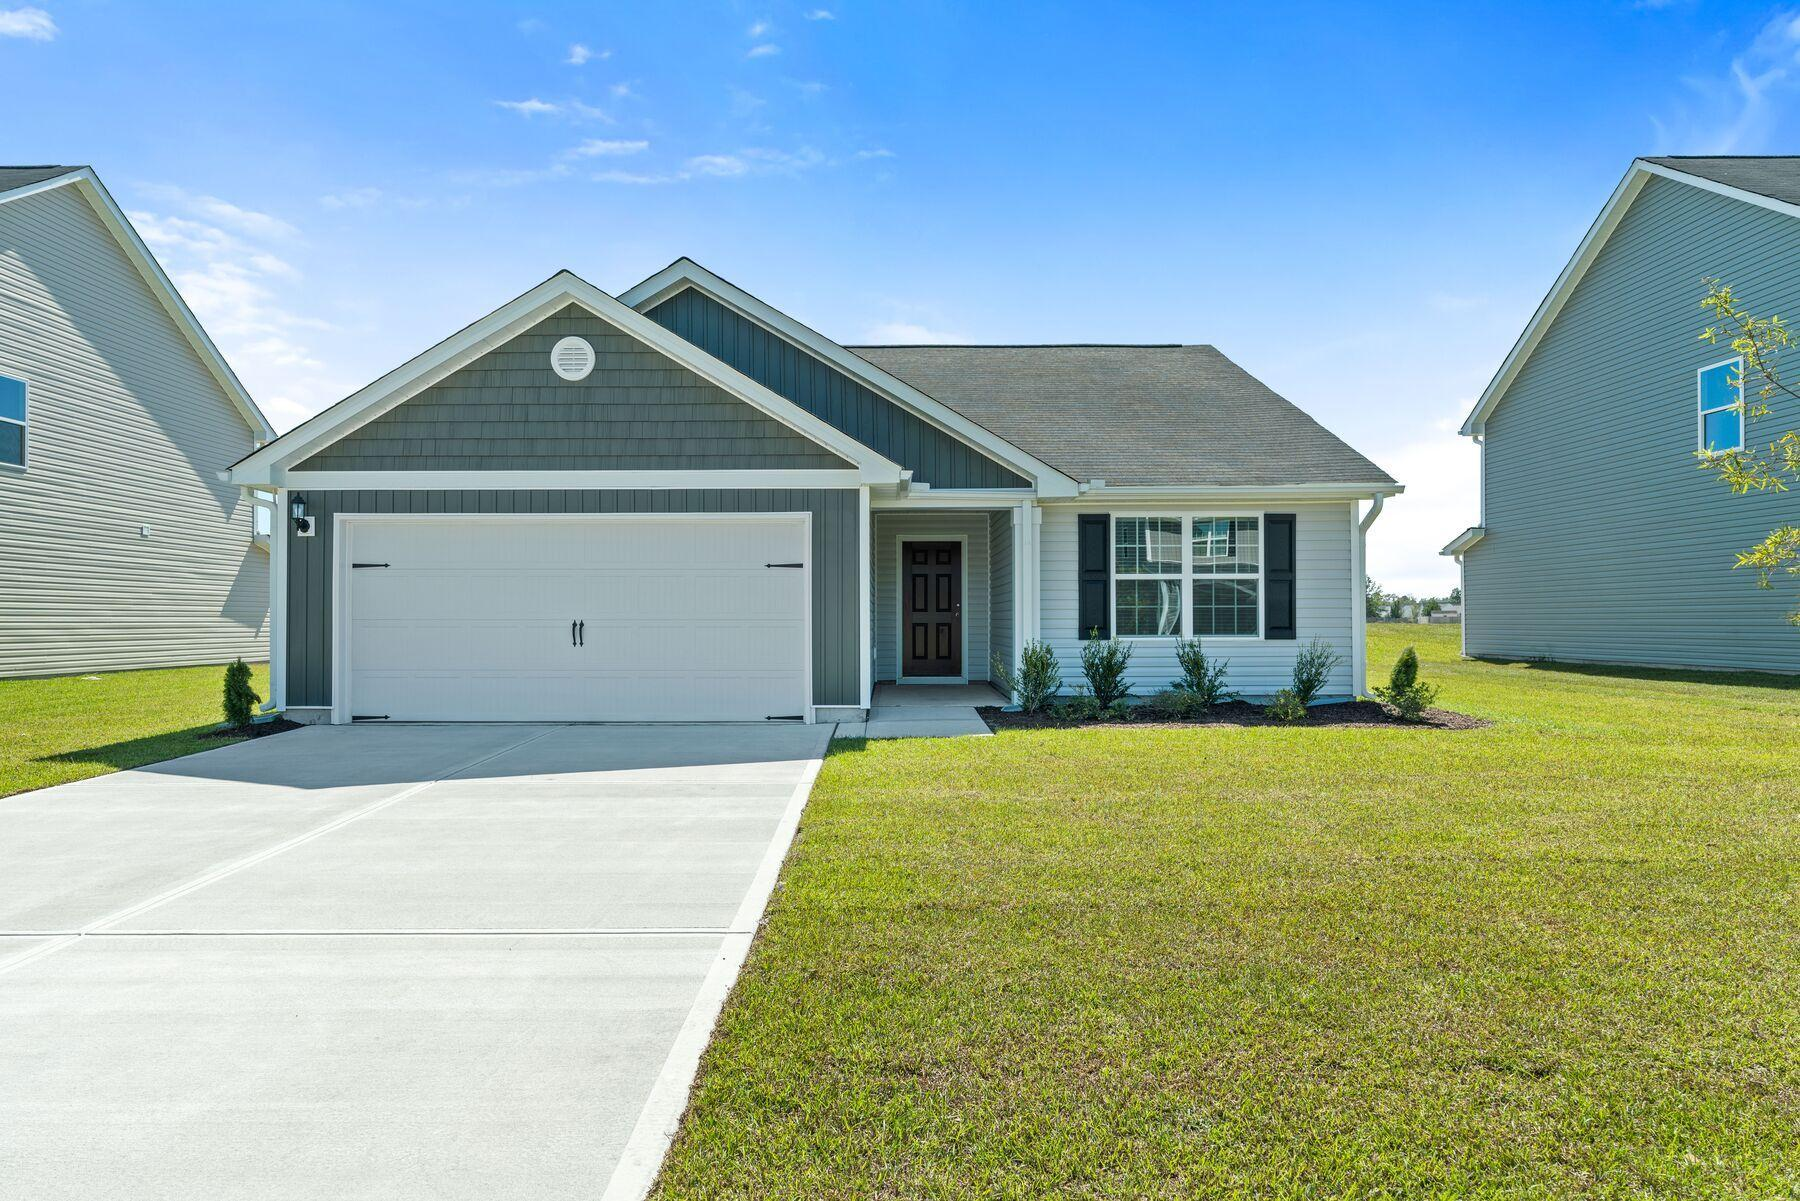 LGI Homes at Cameron Trace:A variety of 3 & 4 bedroom homes are available